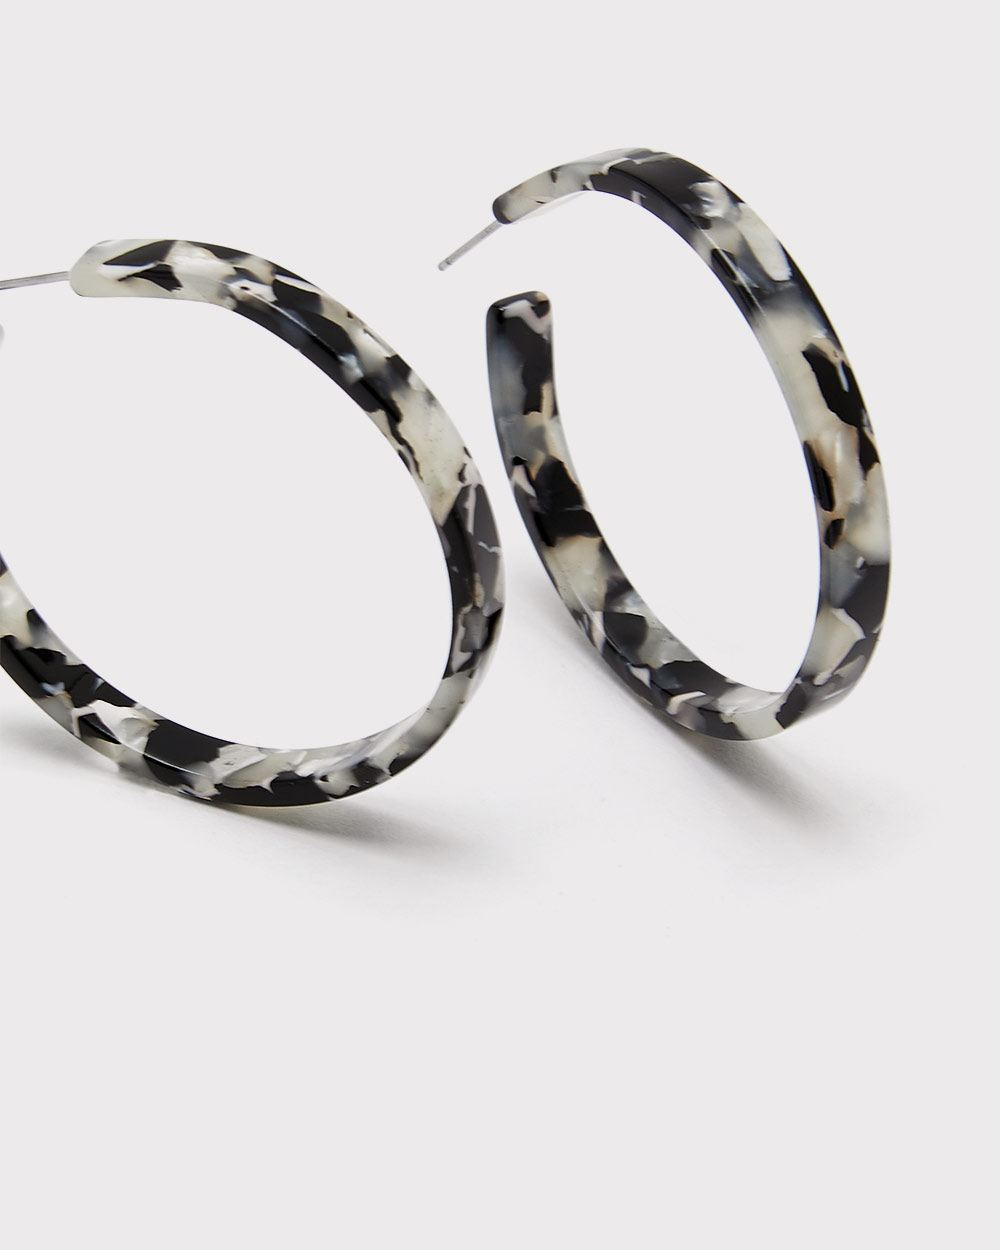 Black Tortoise shell hoop earrings